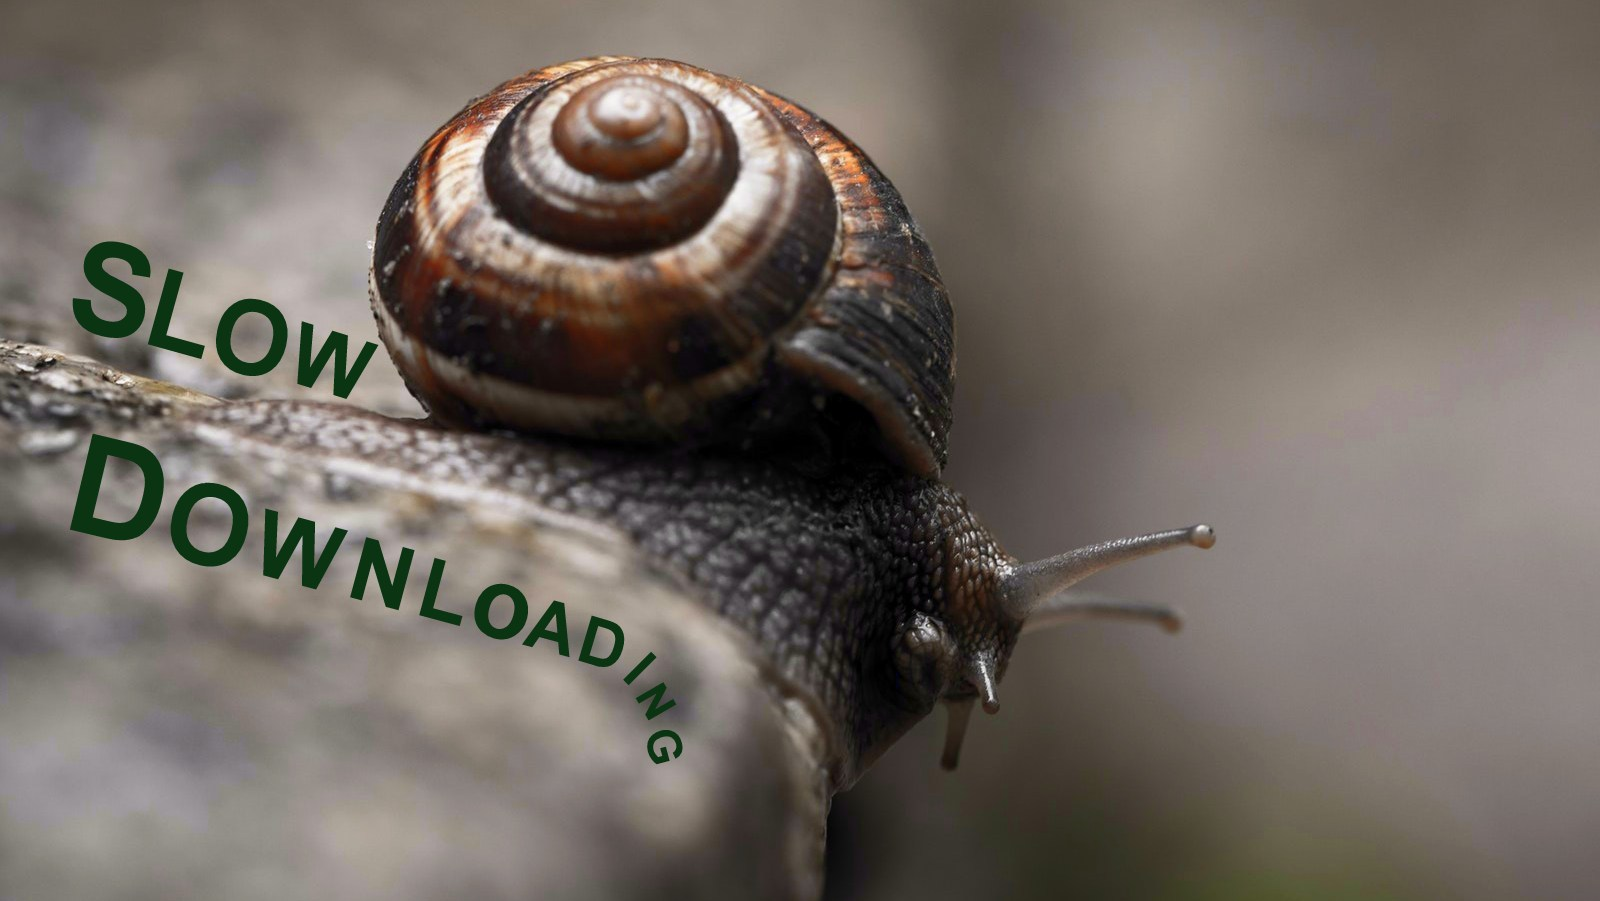 Image: A snail with the words slow download dripping off of him